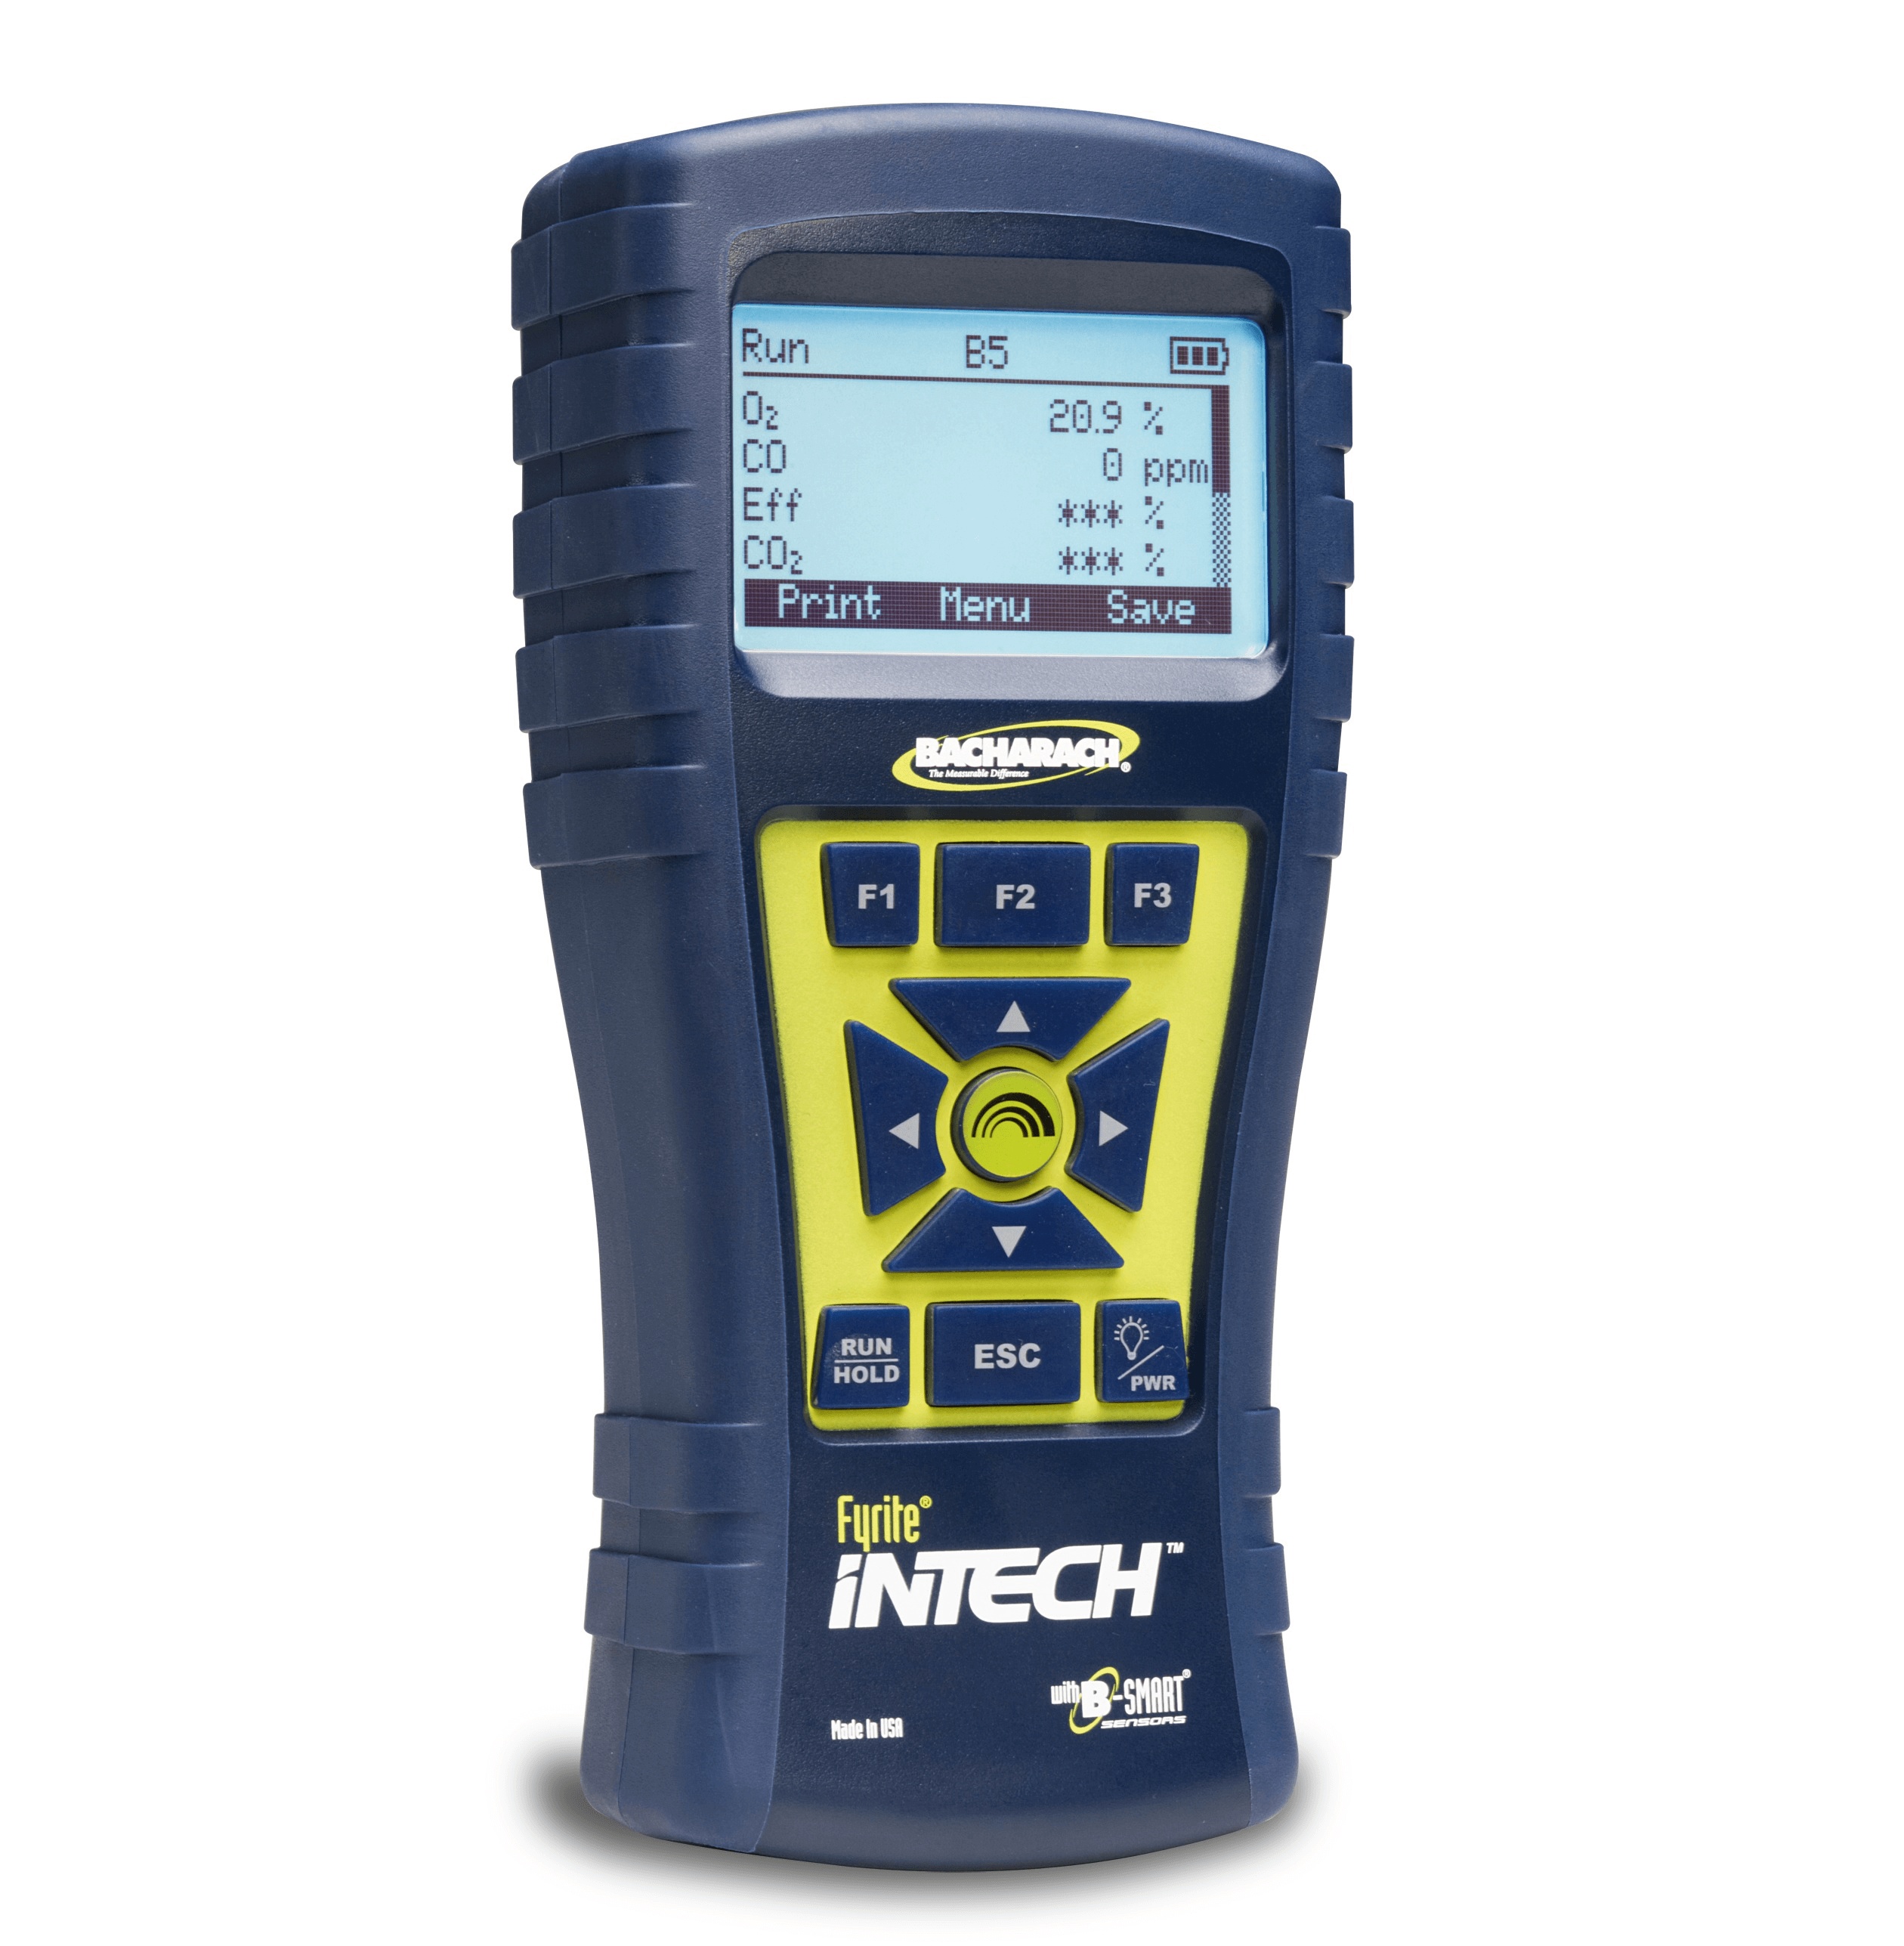 Bacharach 248511 Fyrite InTech Combustion Analyzer Basic